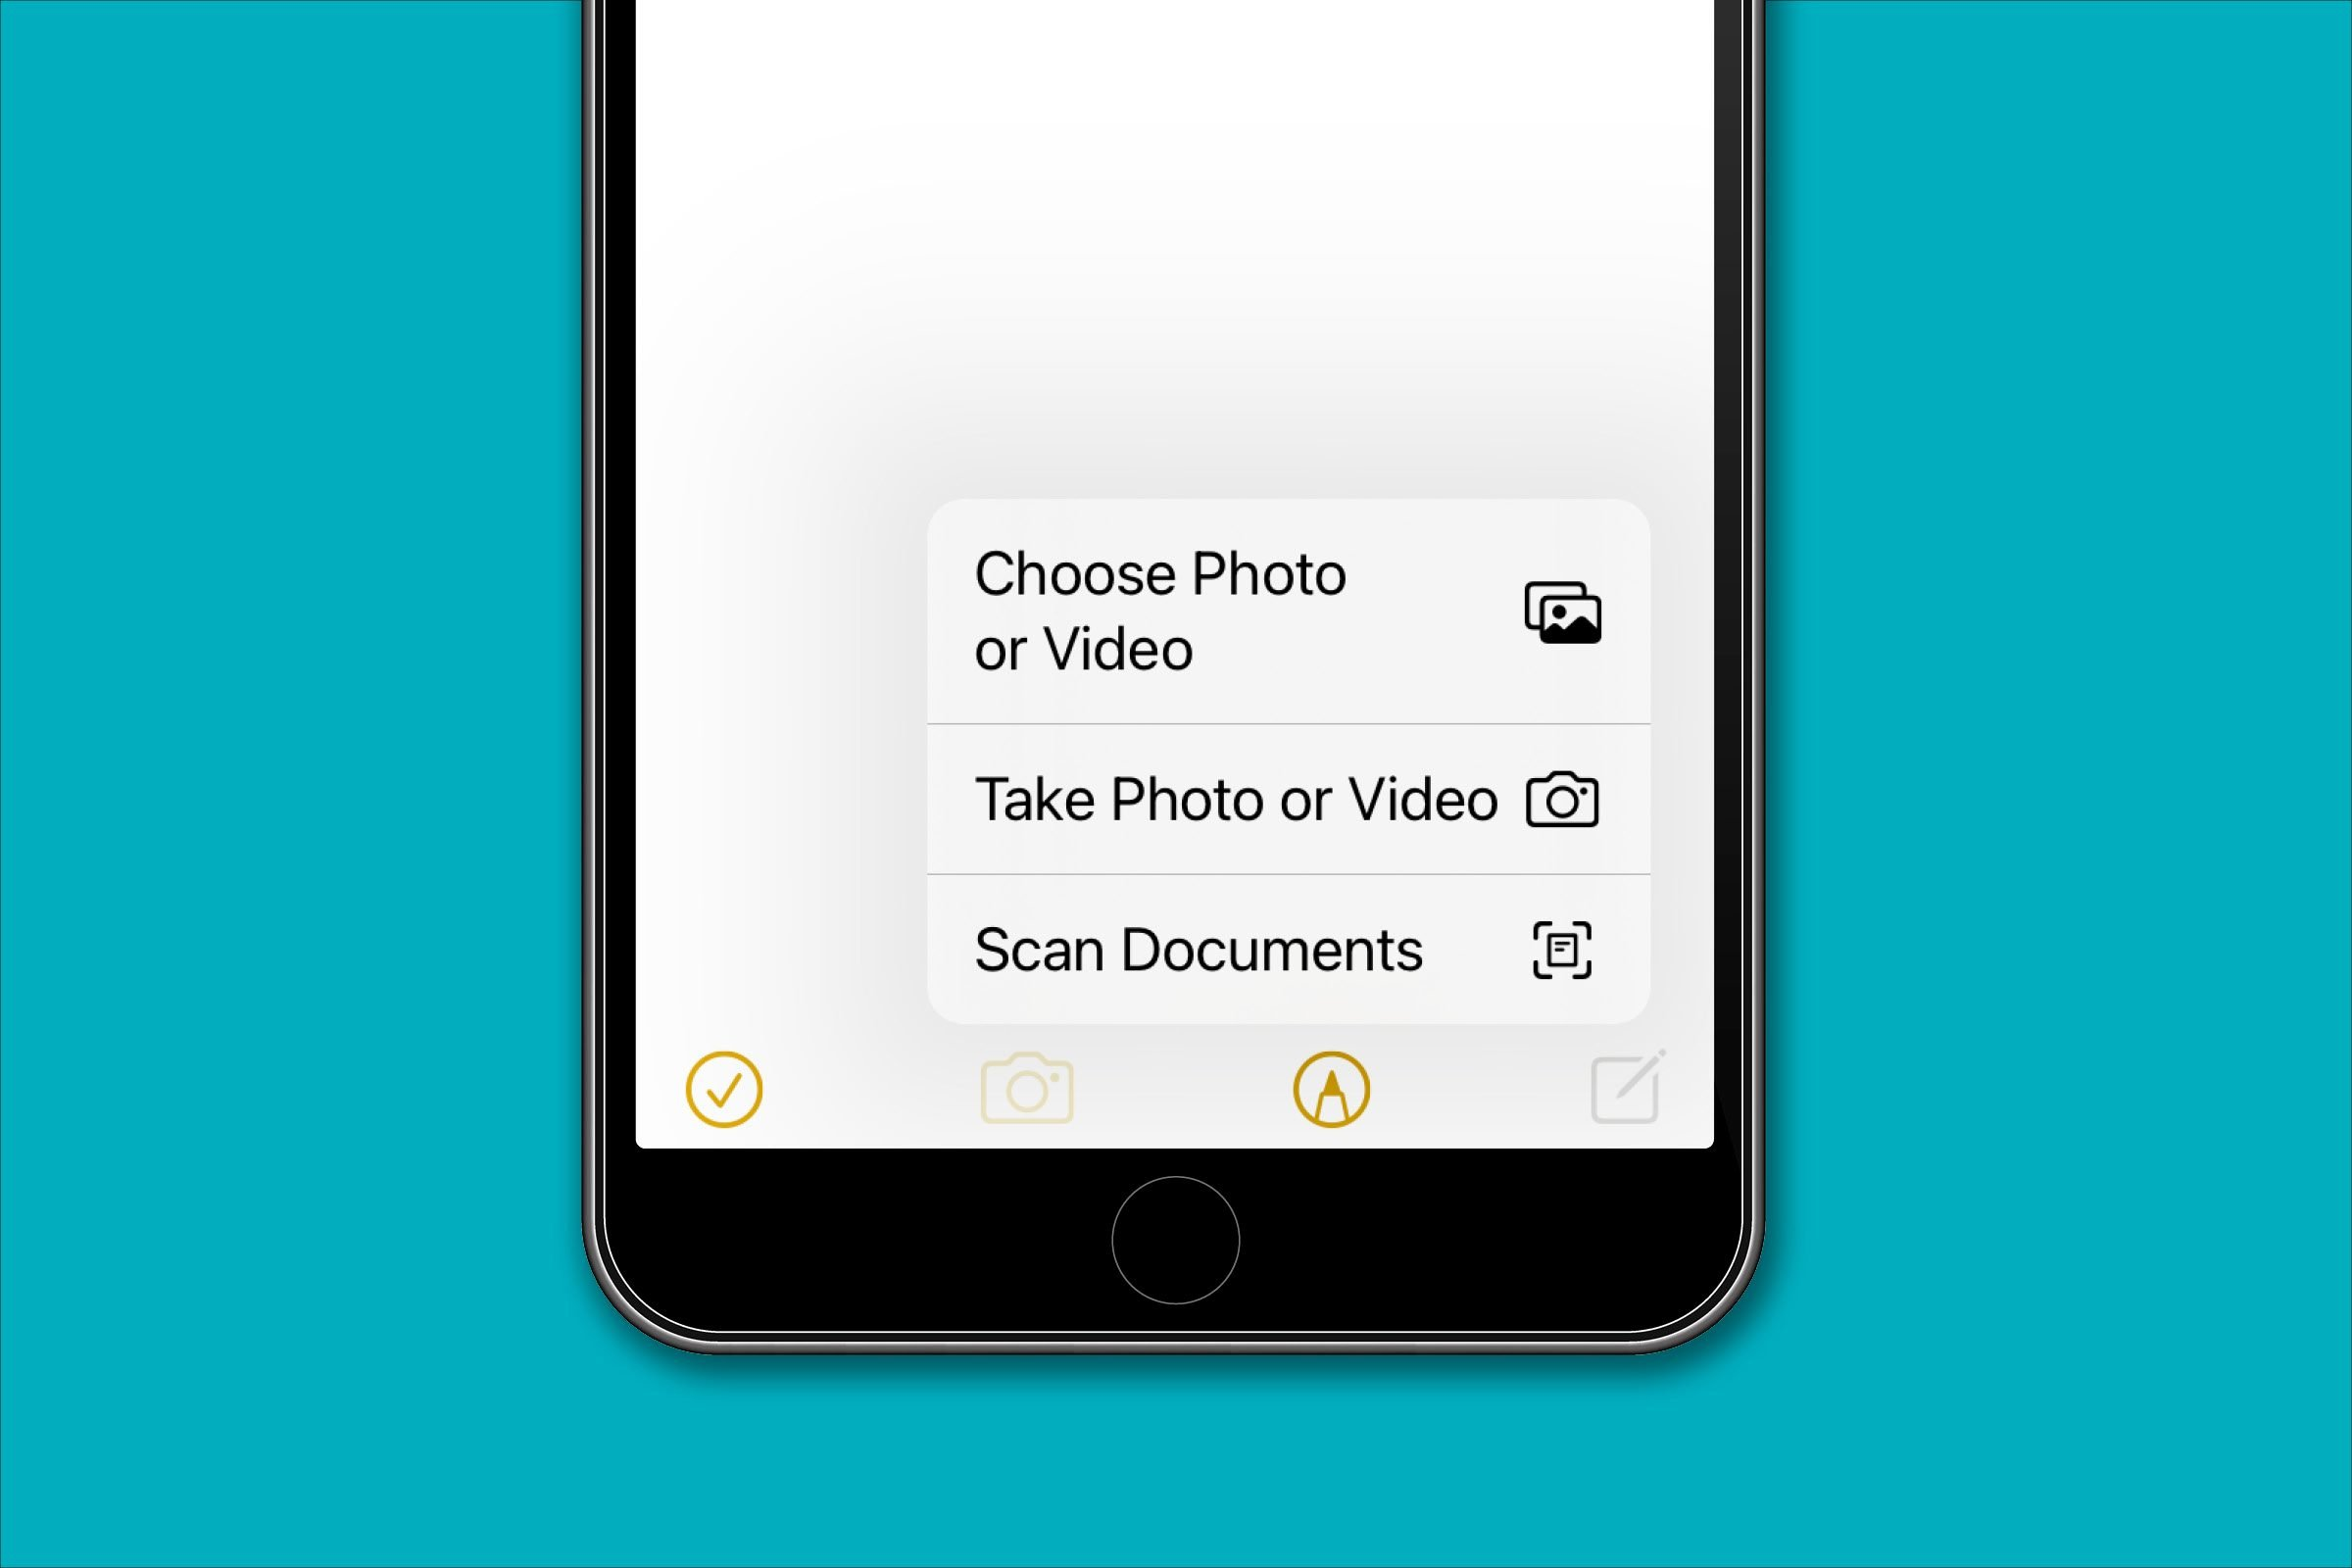 Use your iPhone as a scanner